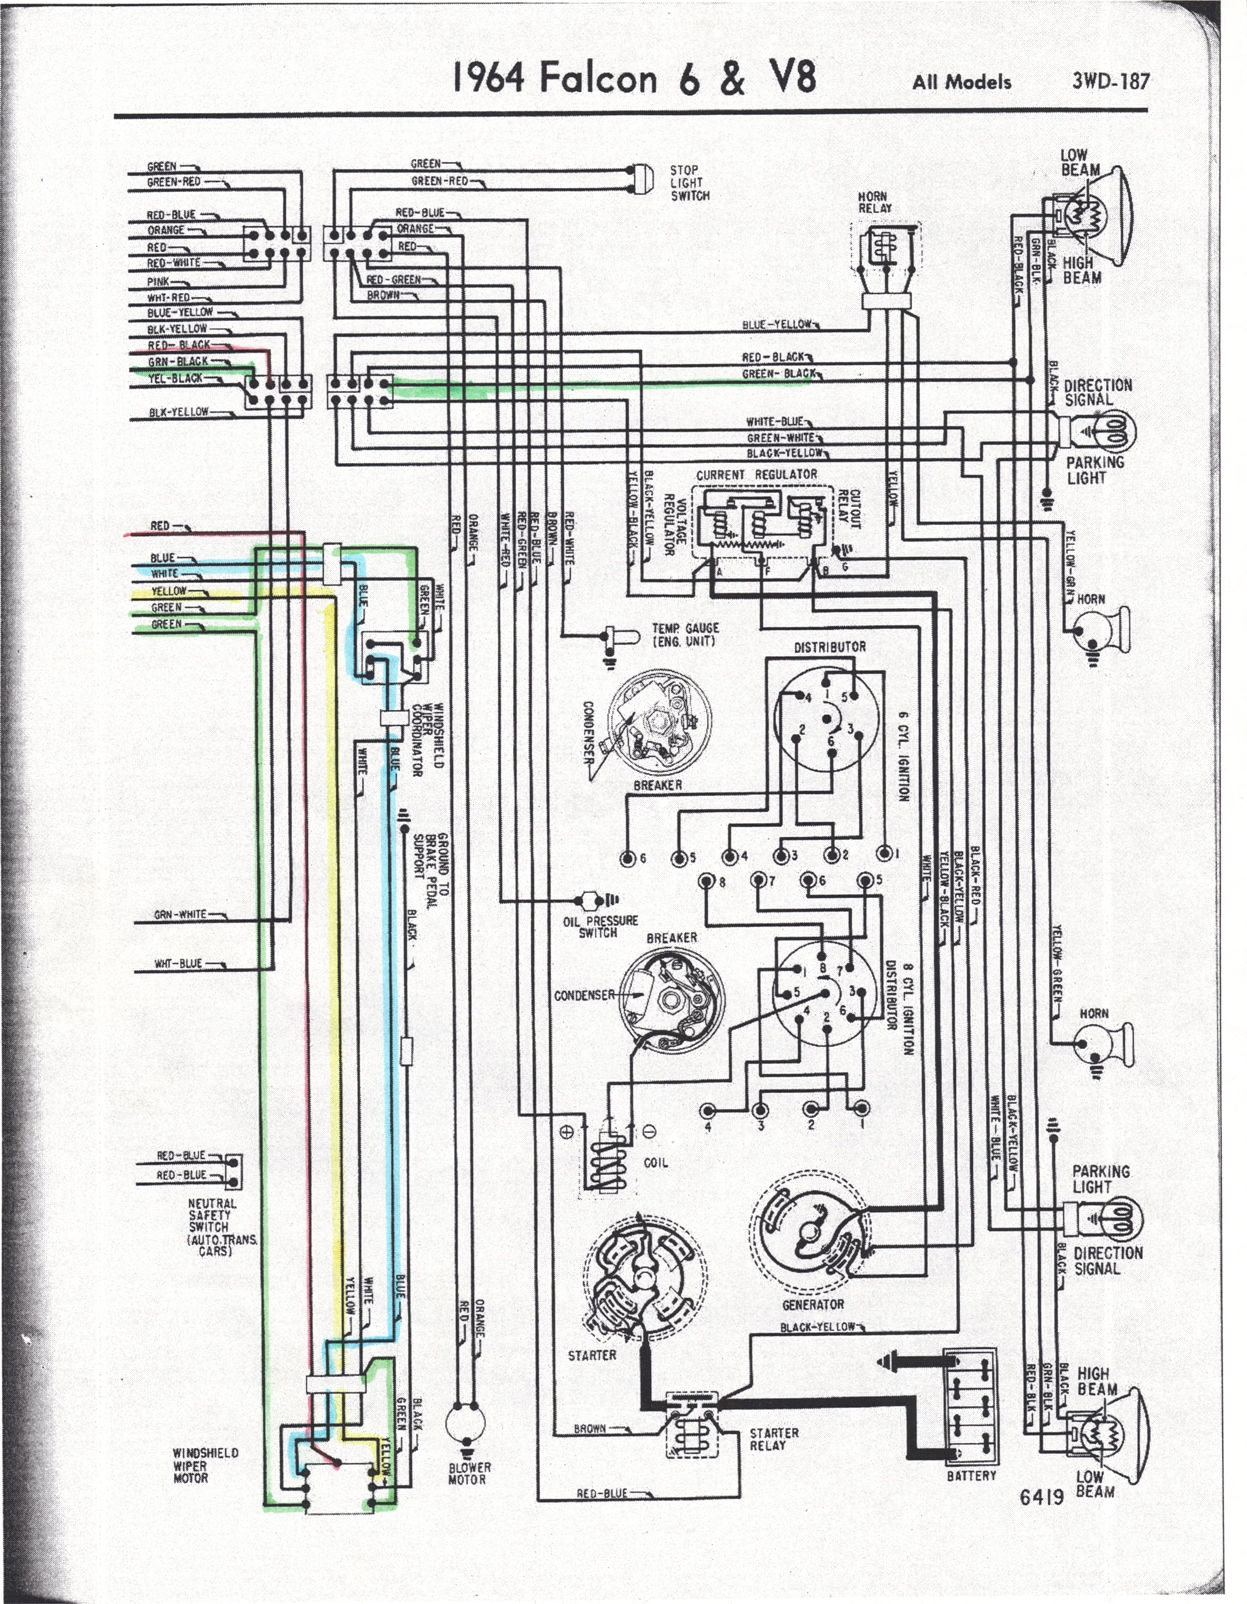 Falcon Diagrams Motor Wiring Diagram On 1965 Ford Mustang Wiper 1964 64 Drawing A